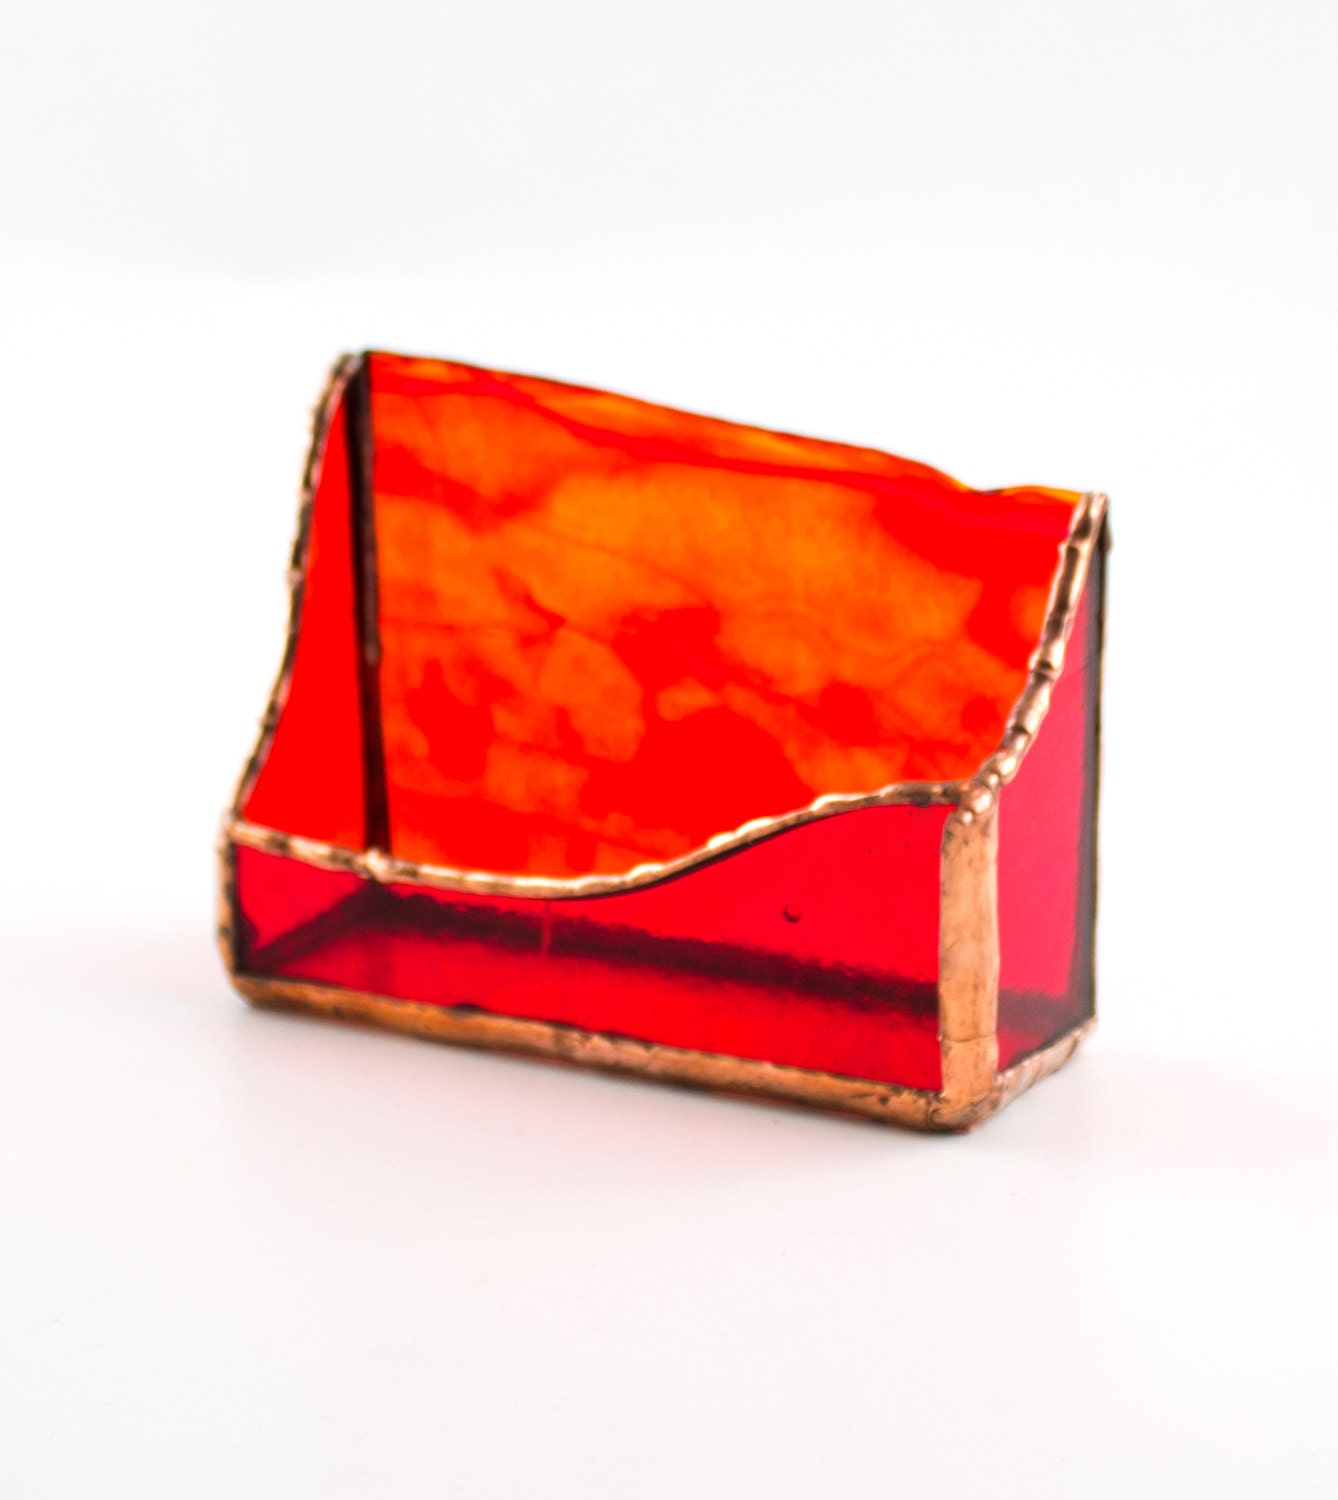 Unique business card holder desk red gold stained glass for Creative business card holders